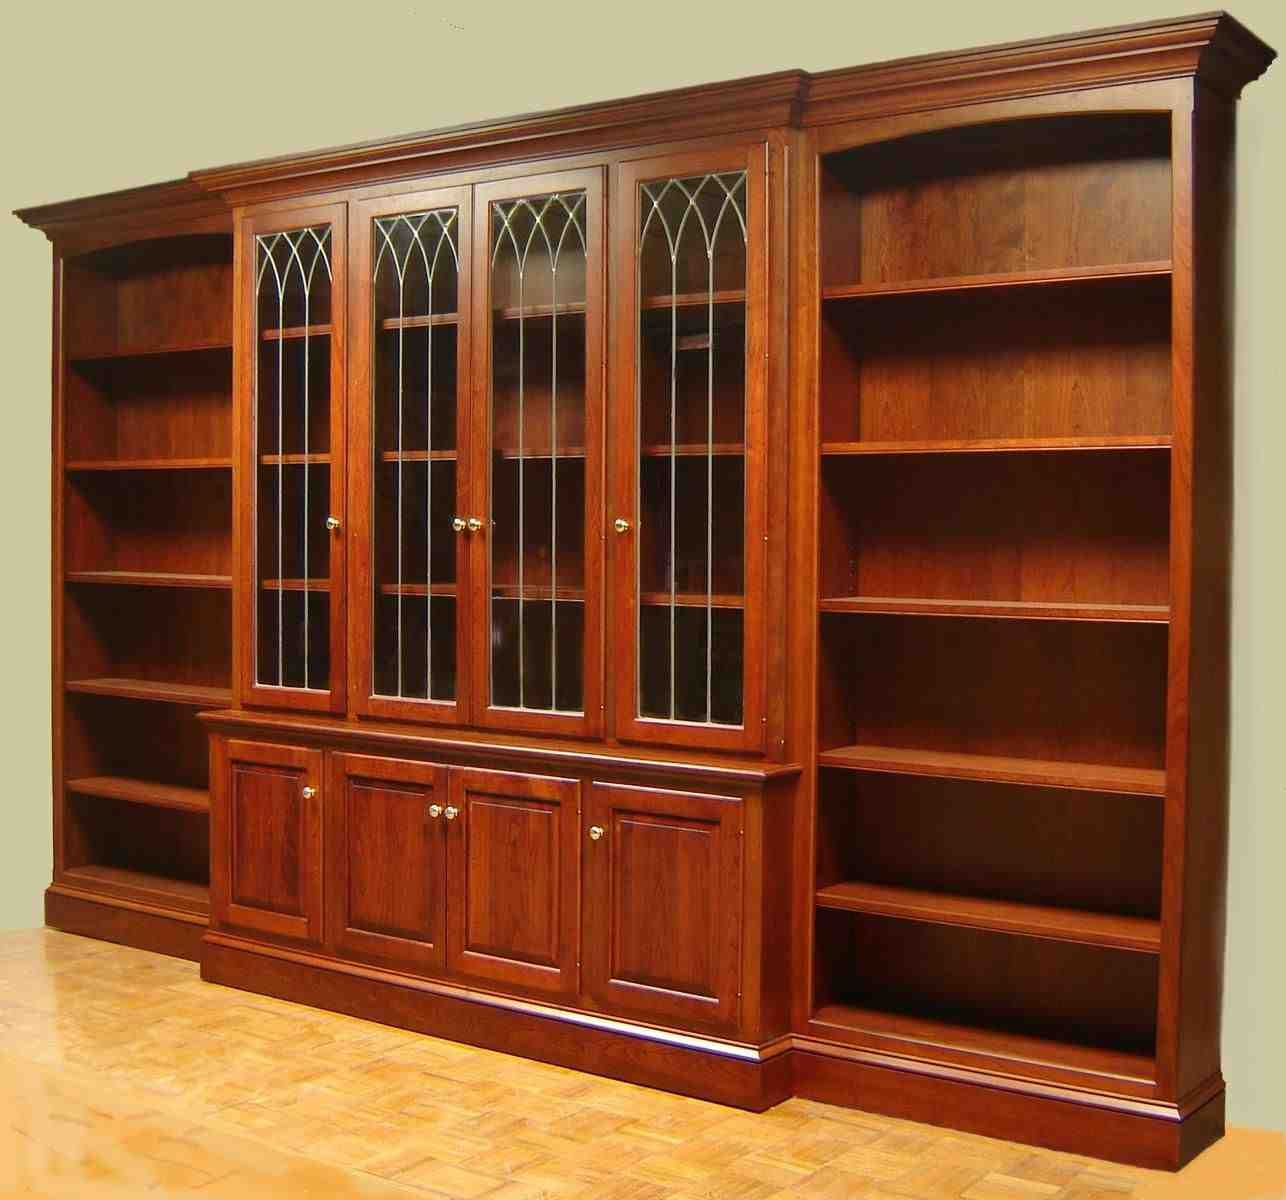 victorian bookcase shop glass bookshelf antique shelves with walnut adjustable library doors